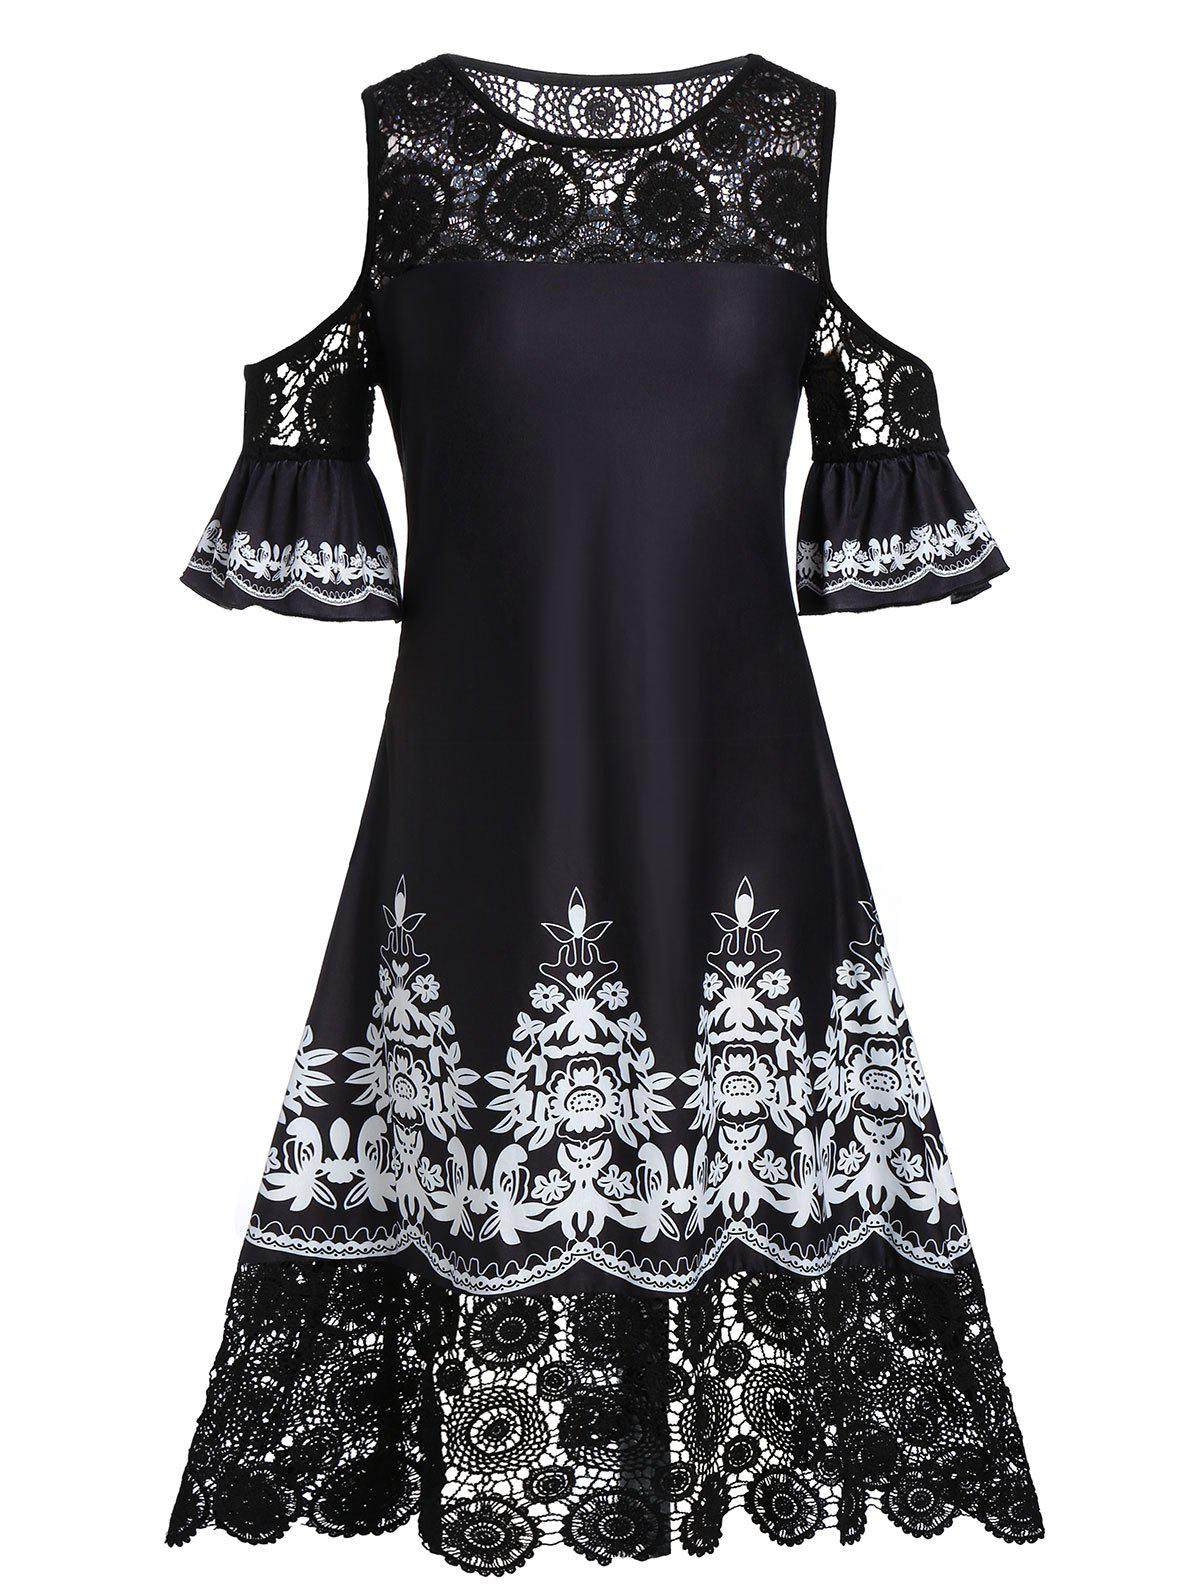 Plus Size Open Shoulder Ethnic Print Lace Crochet Dress - BLACK 5X